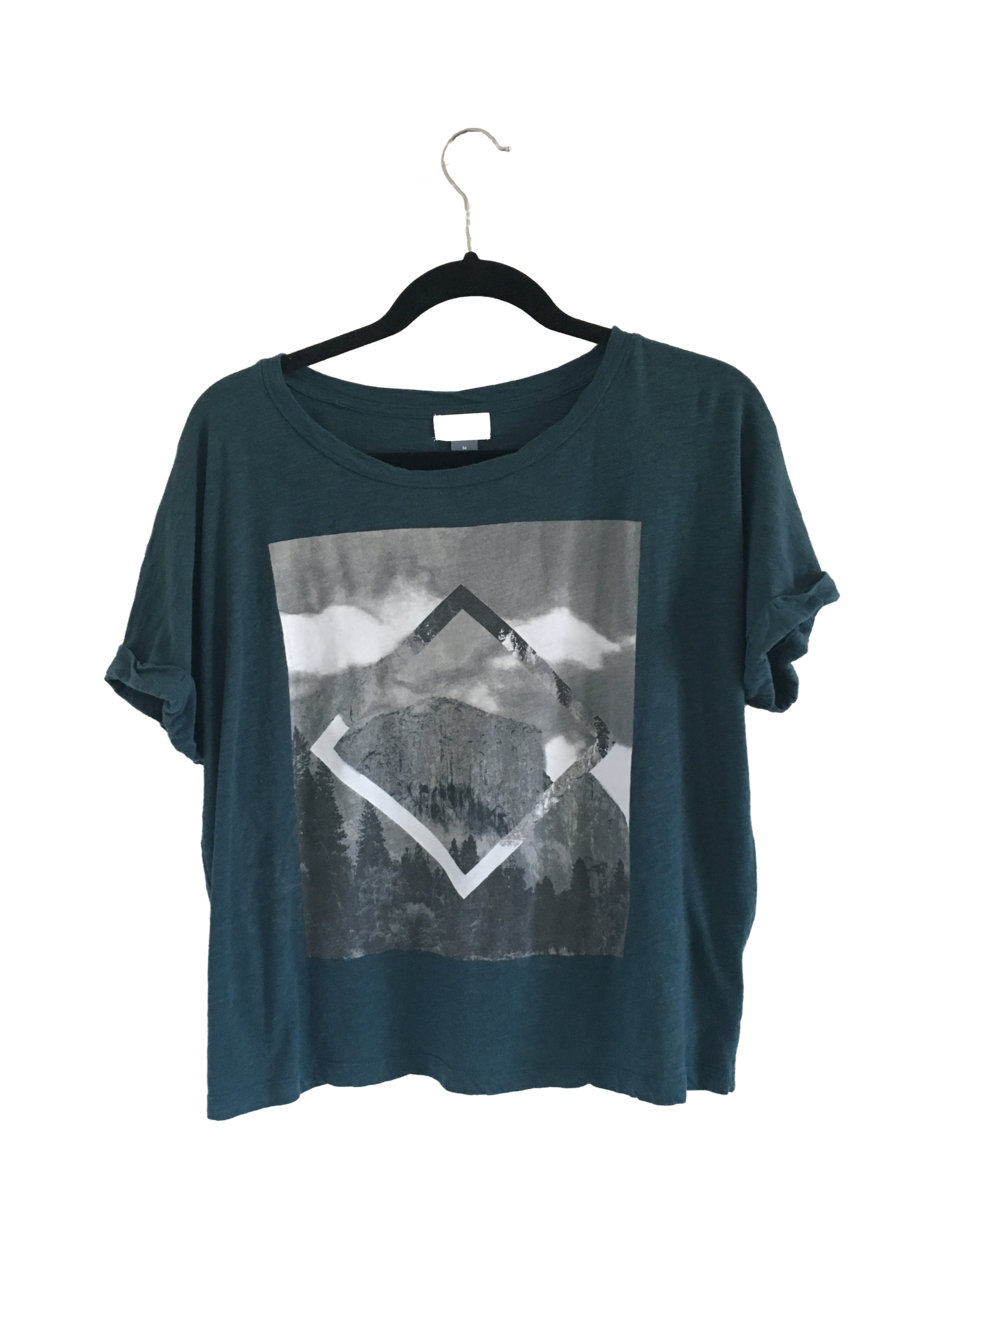 Teal Graphic Tee.png